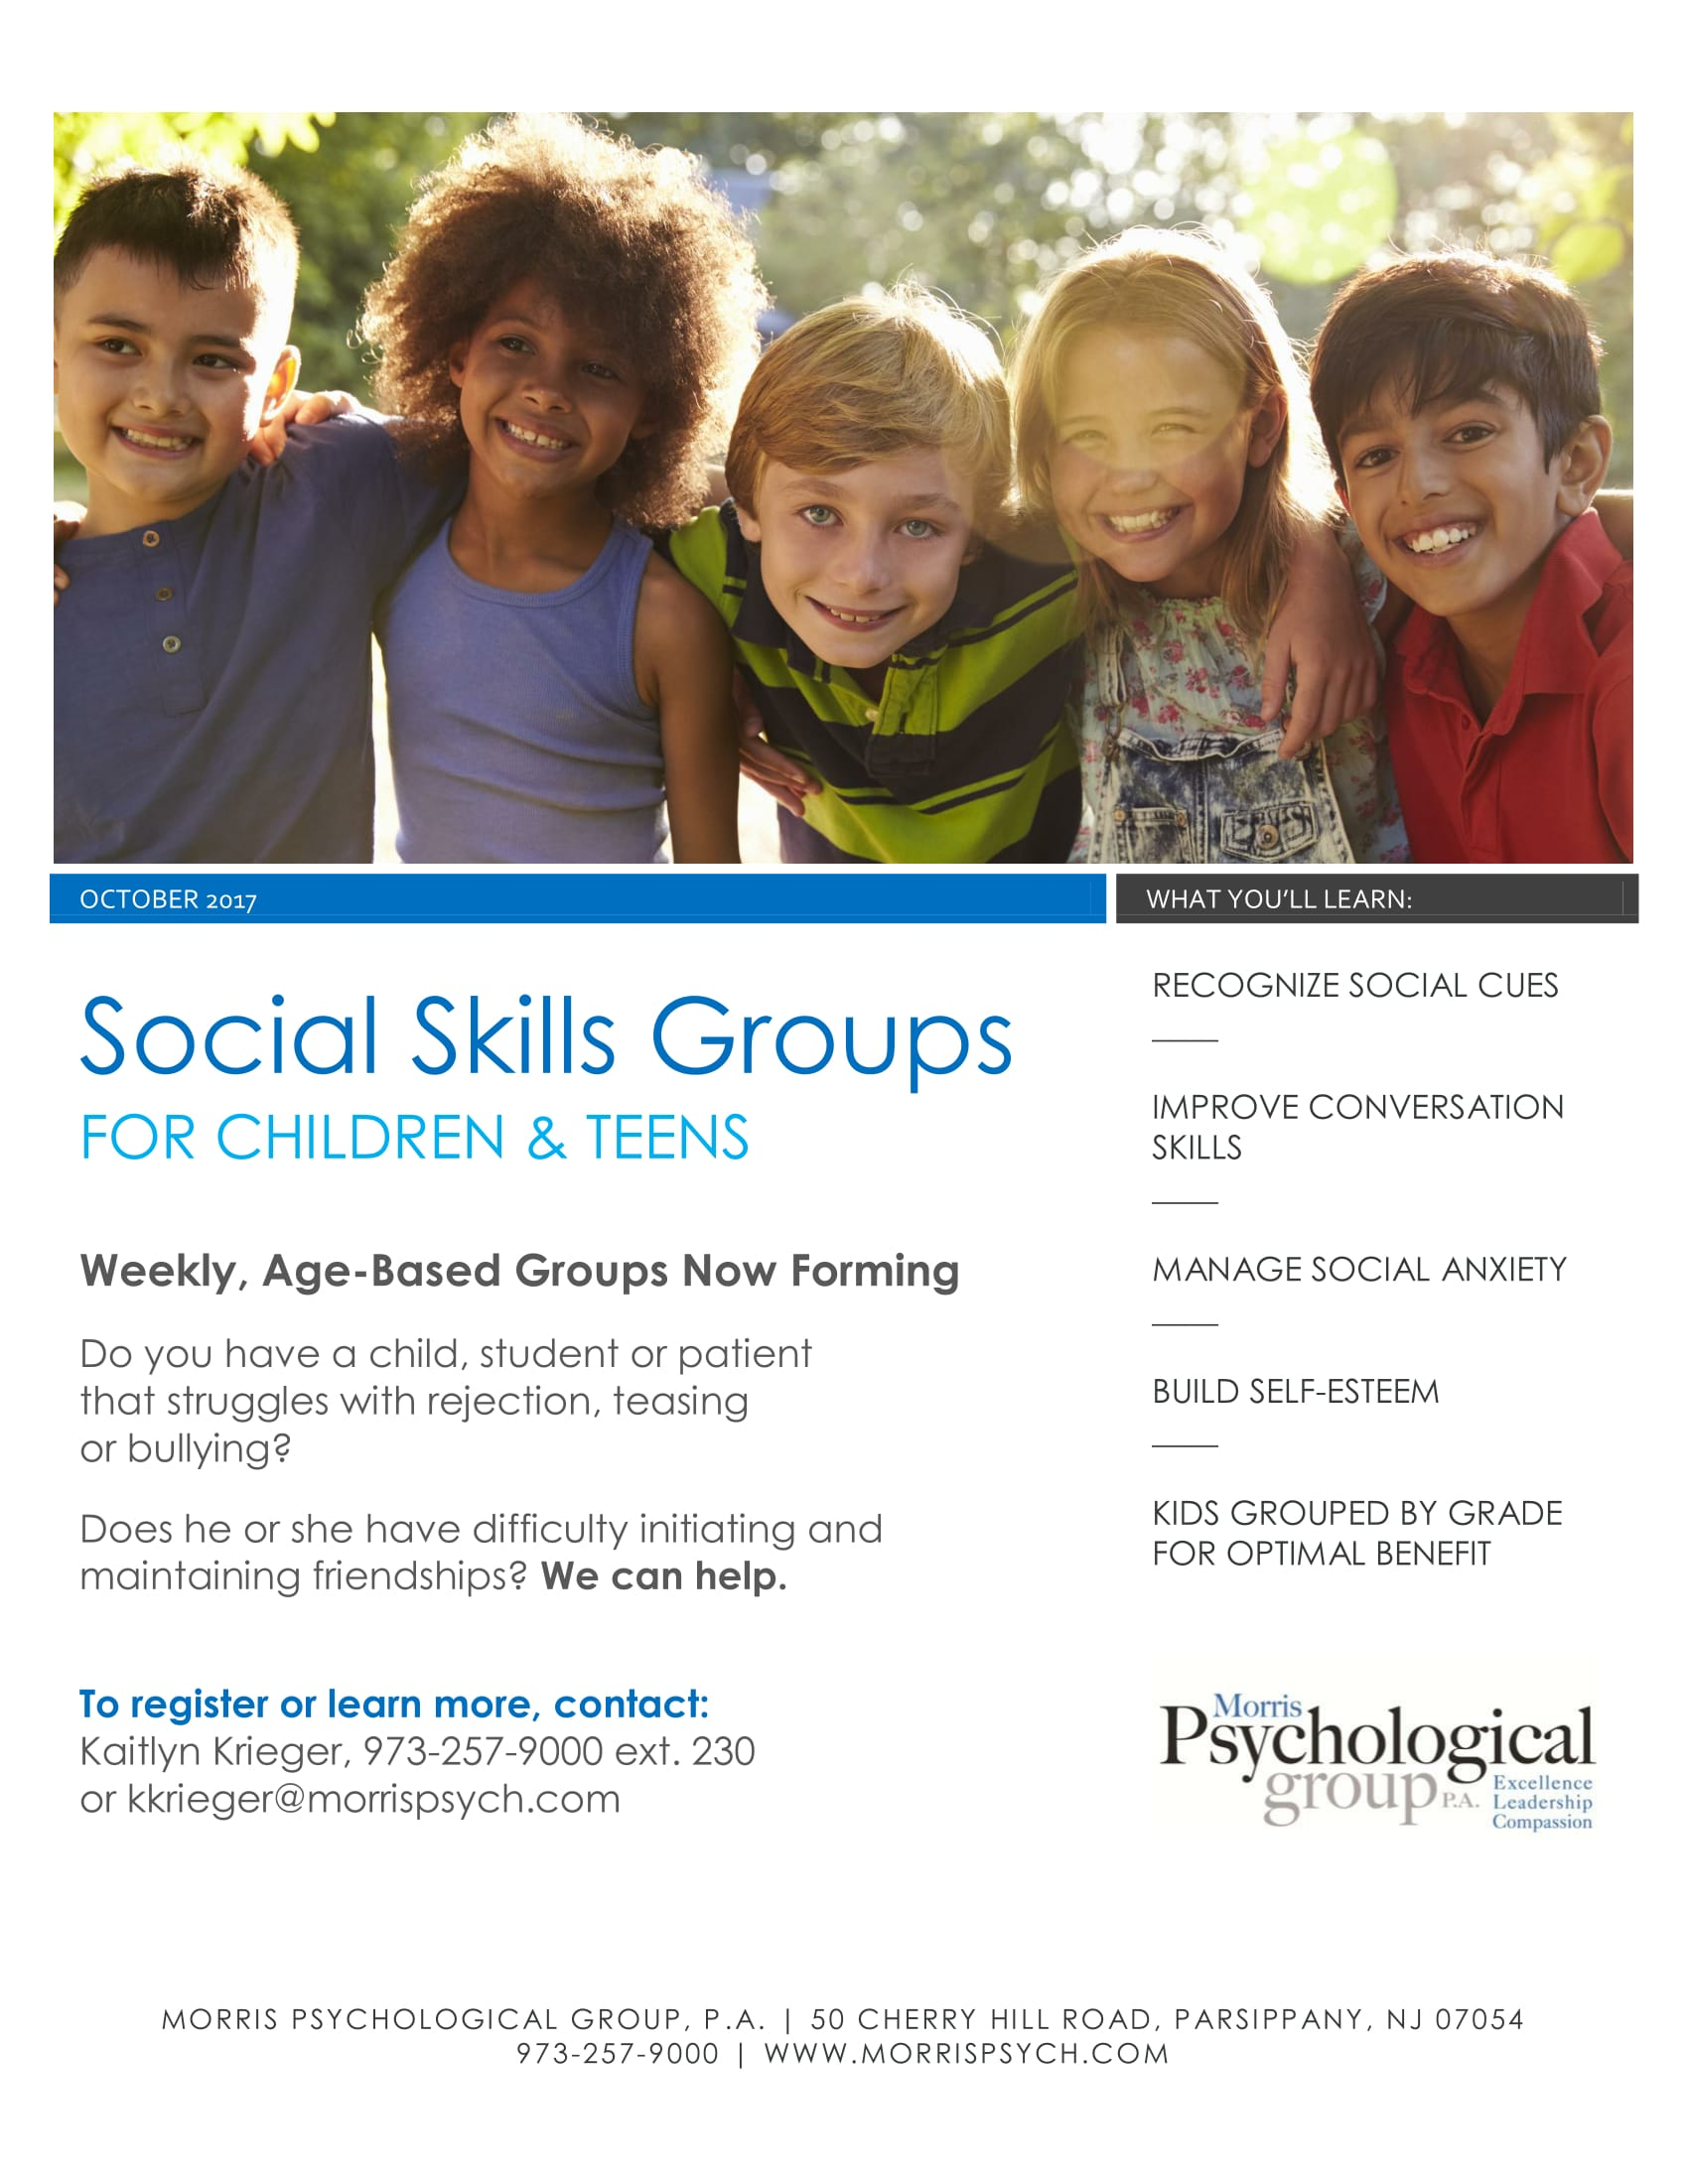 New Social Skills Groups For Children And Teens Are Now